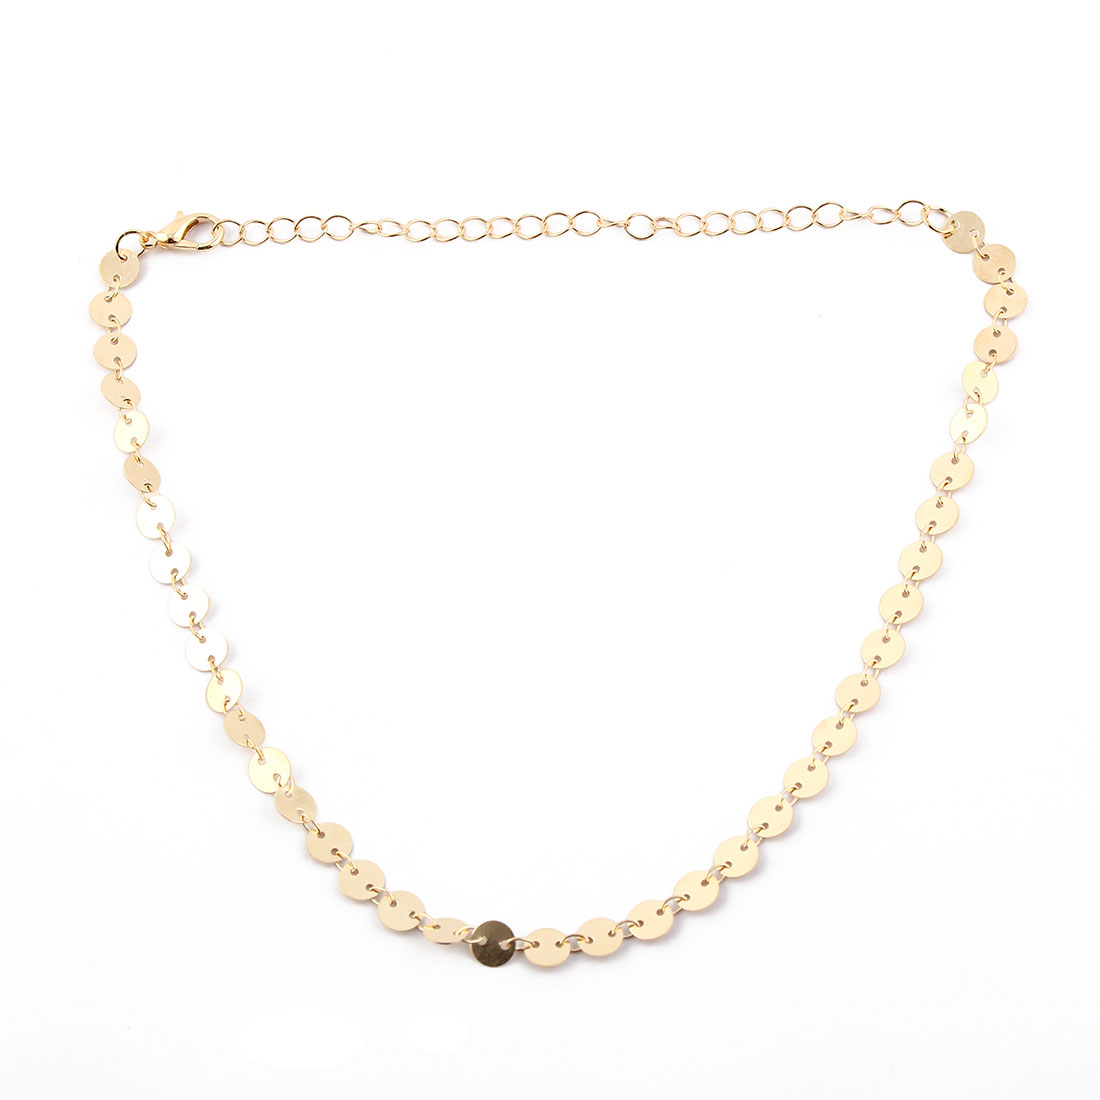 Women Lady Metal Sequins Decor Adjustable Choker Necklace Neck Chain Gold Tone